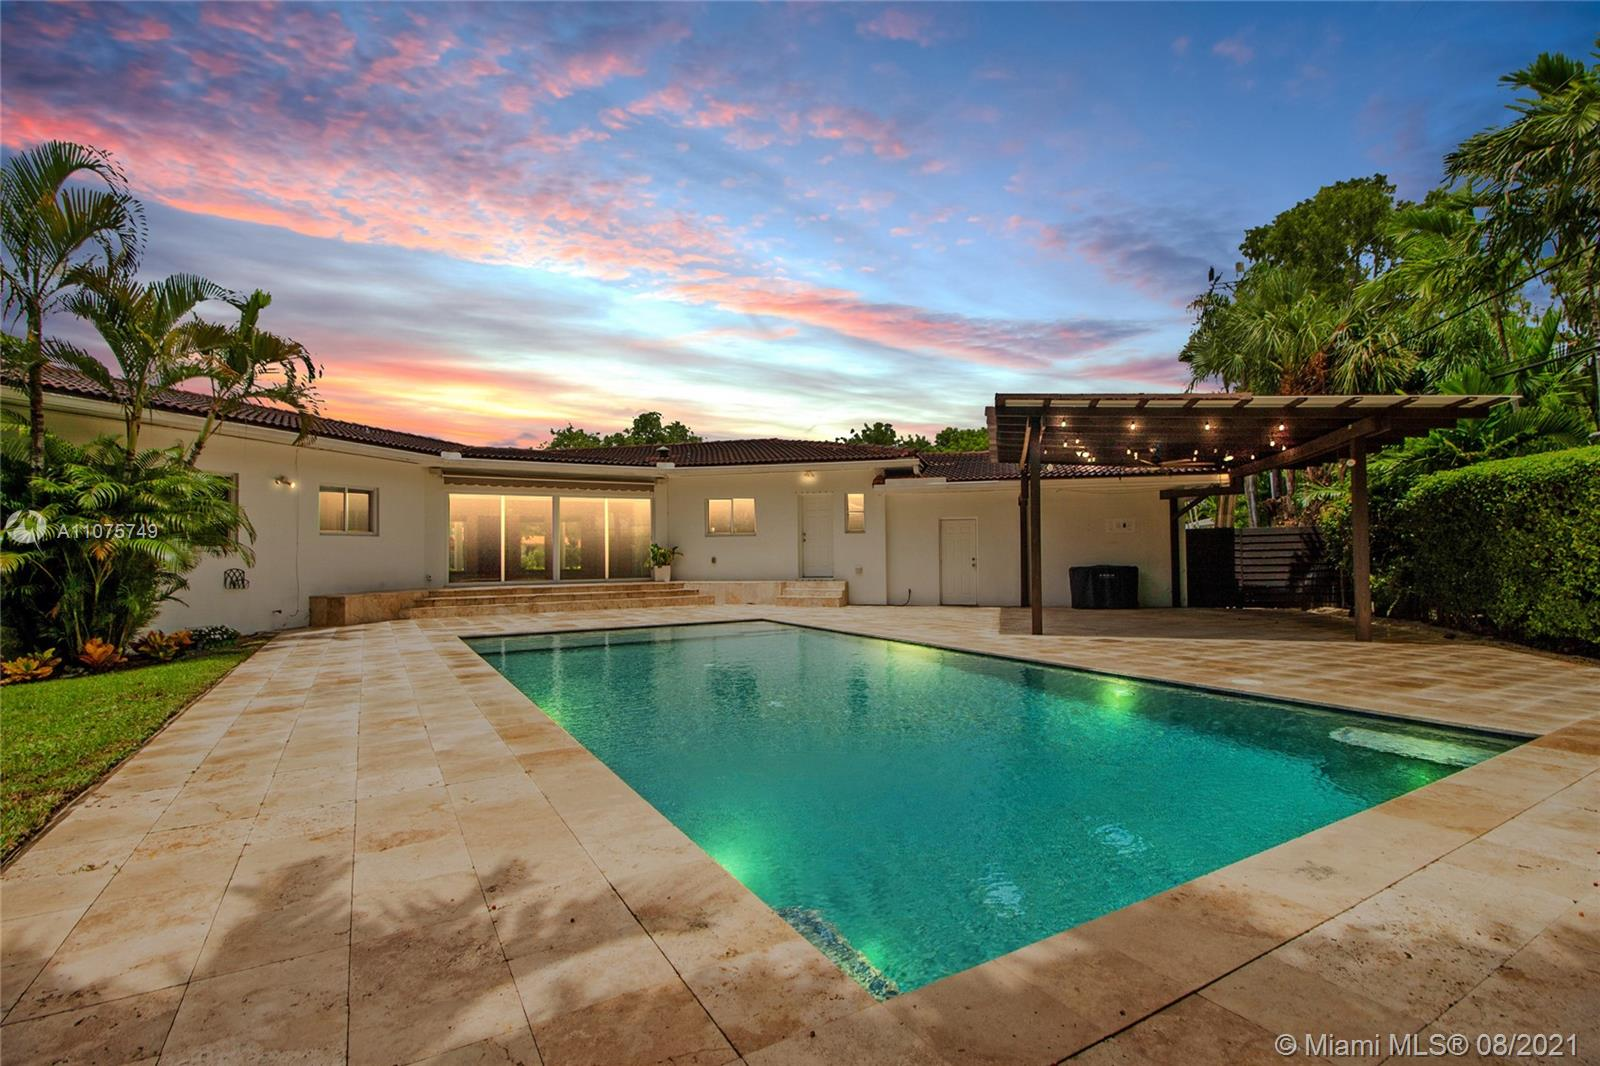 Bright and spacious 4 bedroom/4.5 bath residence with large heated pool and an oversized two car garage. This lovely house on a corner lot has 13,250 square feet of landscaped garden with a fully fenced backyard ideal for privacy and security. Property features a large outdoor entertainment area with a gazebo, open floor plan, impact windows/doors, 2 new a/c's, laundry room and hardwood floors. Sidewalks on each side of the street, 24/7 police patrol & no flood zone. Close to excellent private and public schools, waterfront parks, beaches, airport, downtown and Brickell area. Also available for short term rental.